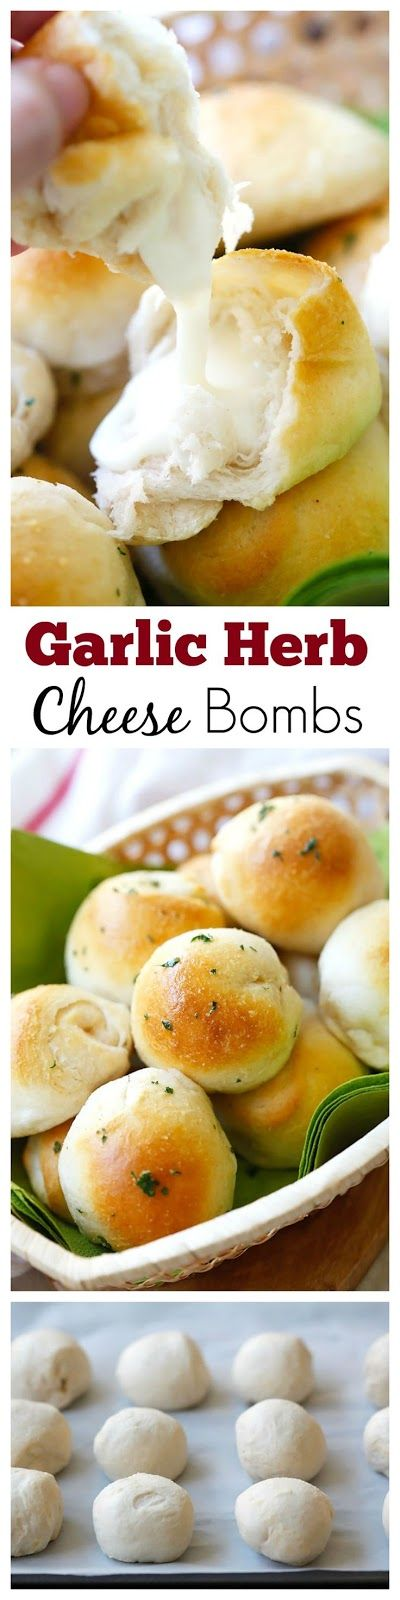 Garlic Herb Cheese Bomb Recipe  Easy Foods To Make  Quick Easy Recipes